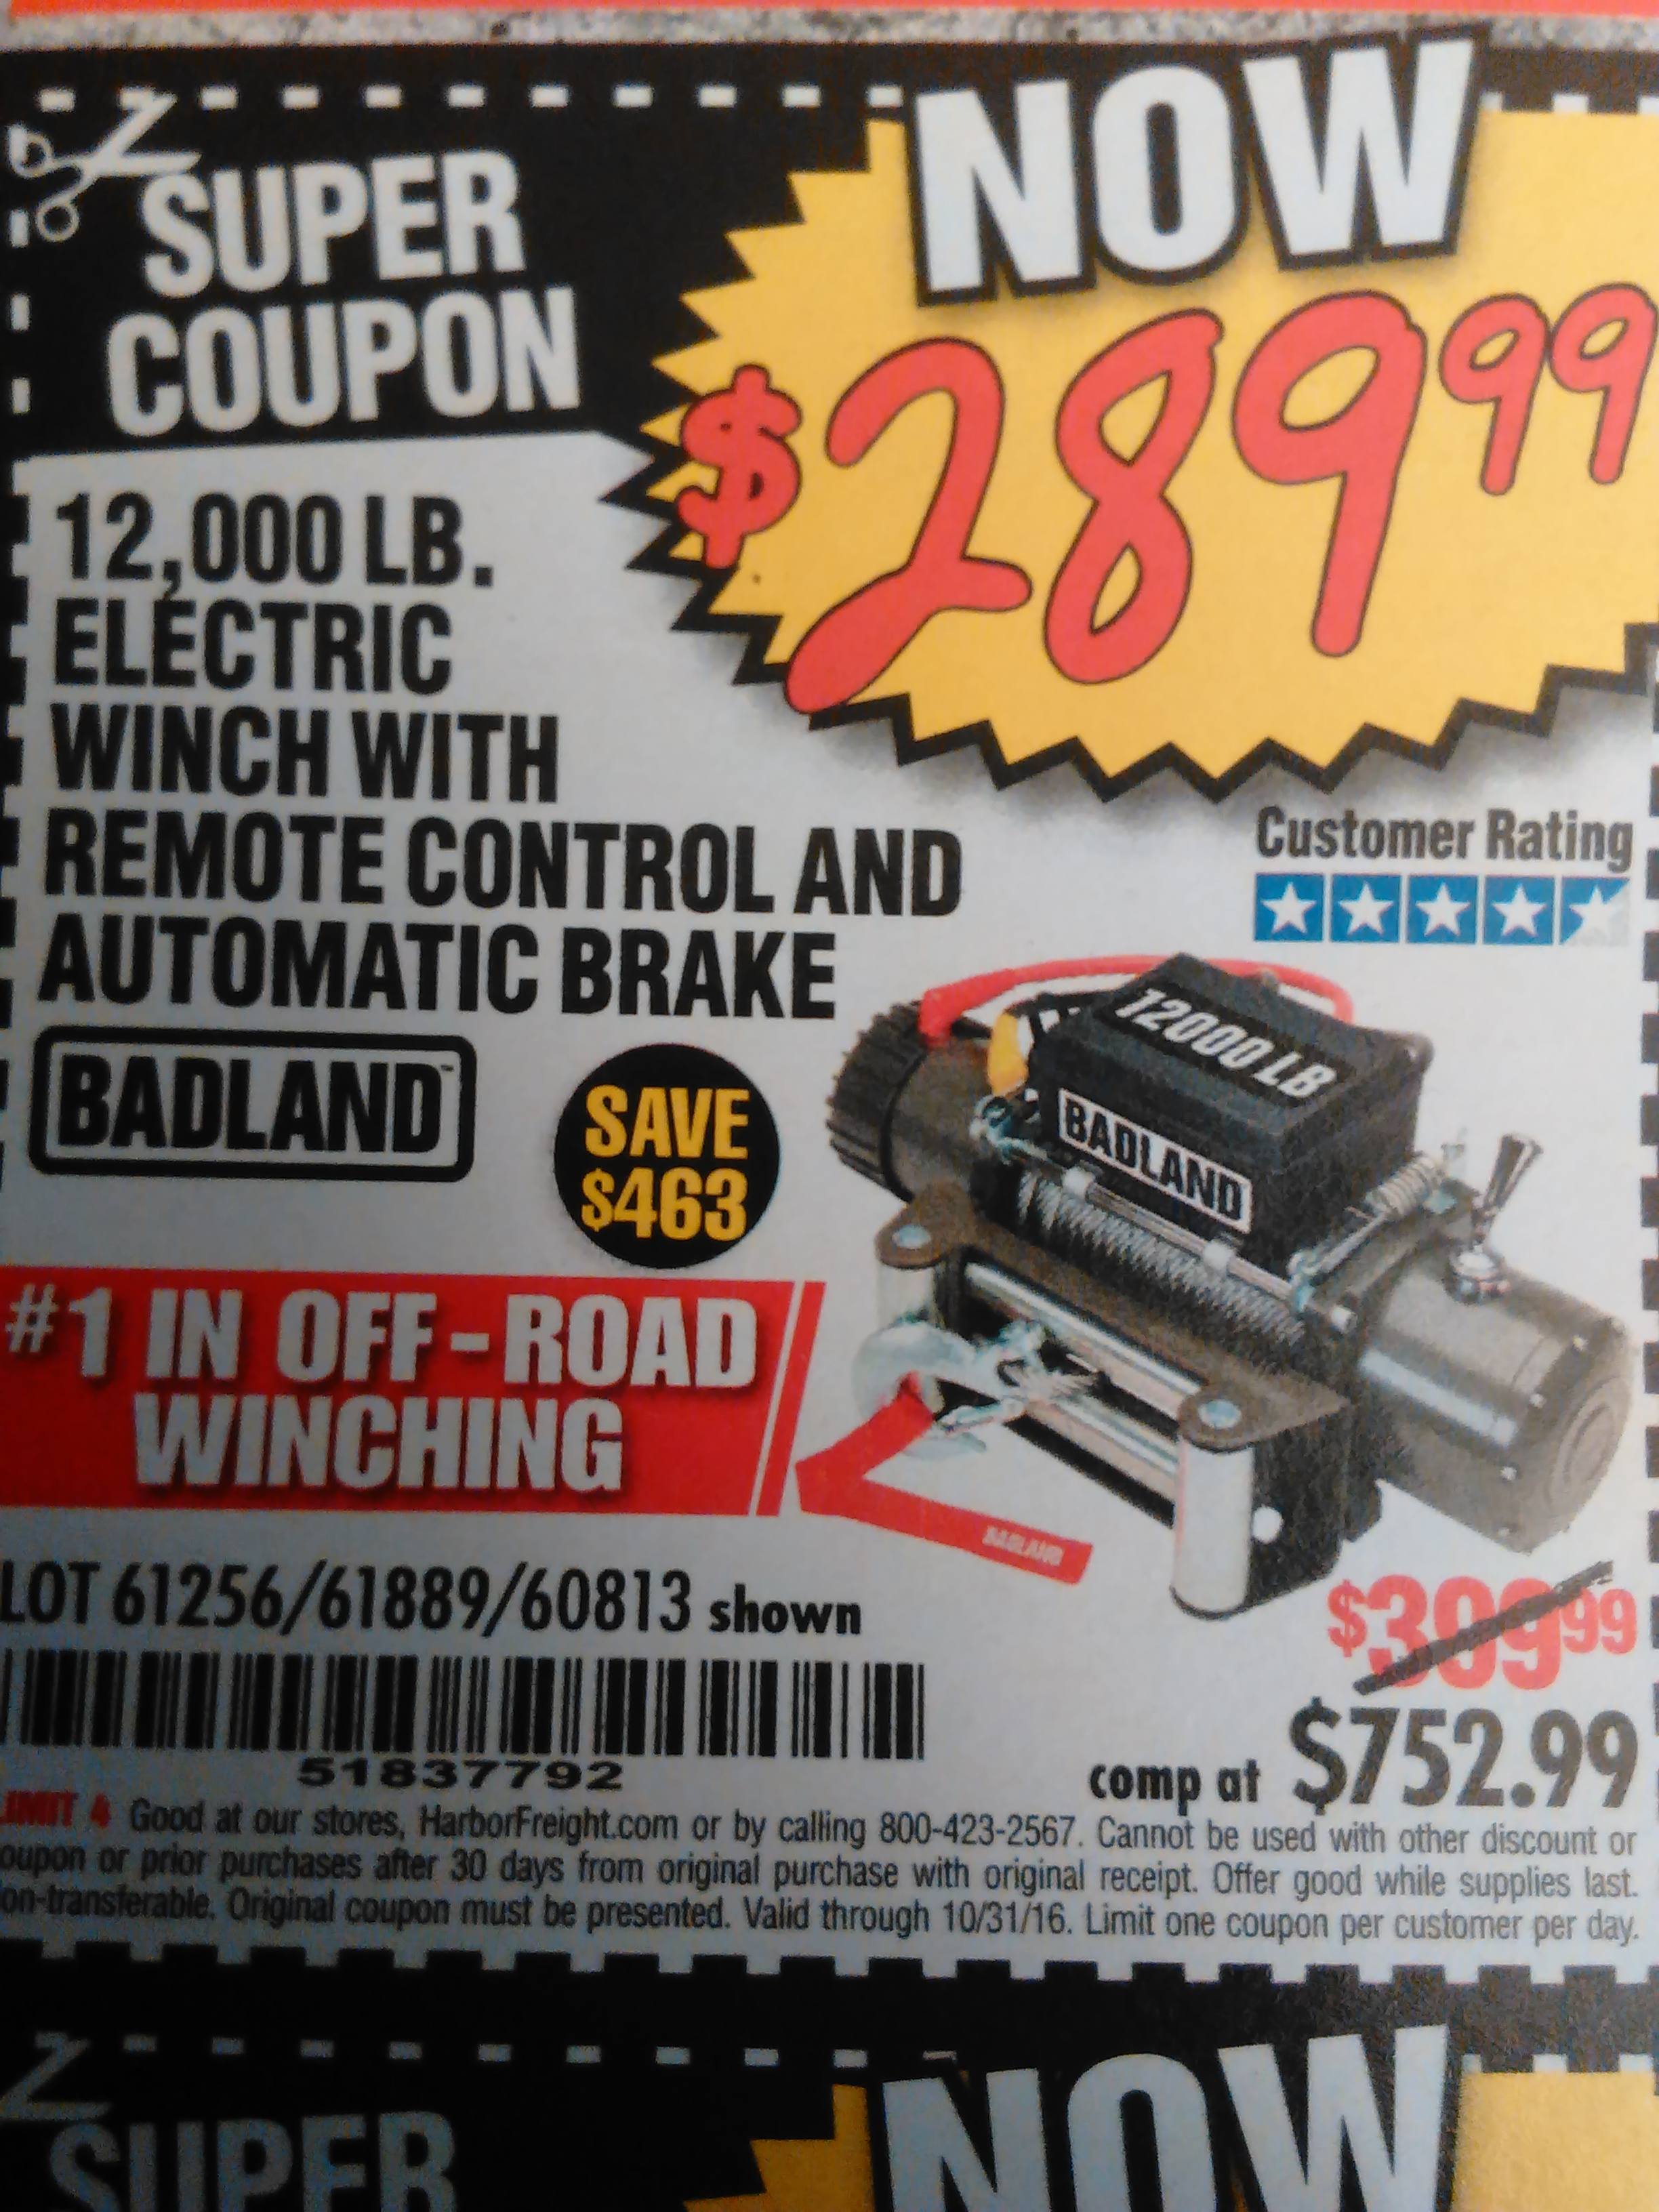 Harbor Freight Winch Coupon 12000 Omega Sports Printable Remote Wiring Diagram Lb Off Road Vehicle Electric With Automatic Load Holdingharbor Winches 4 Results From Brands